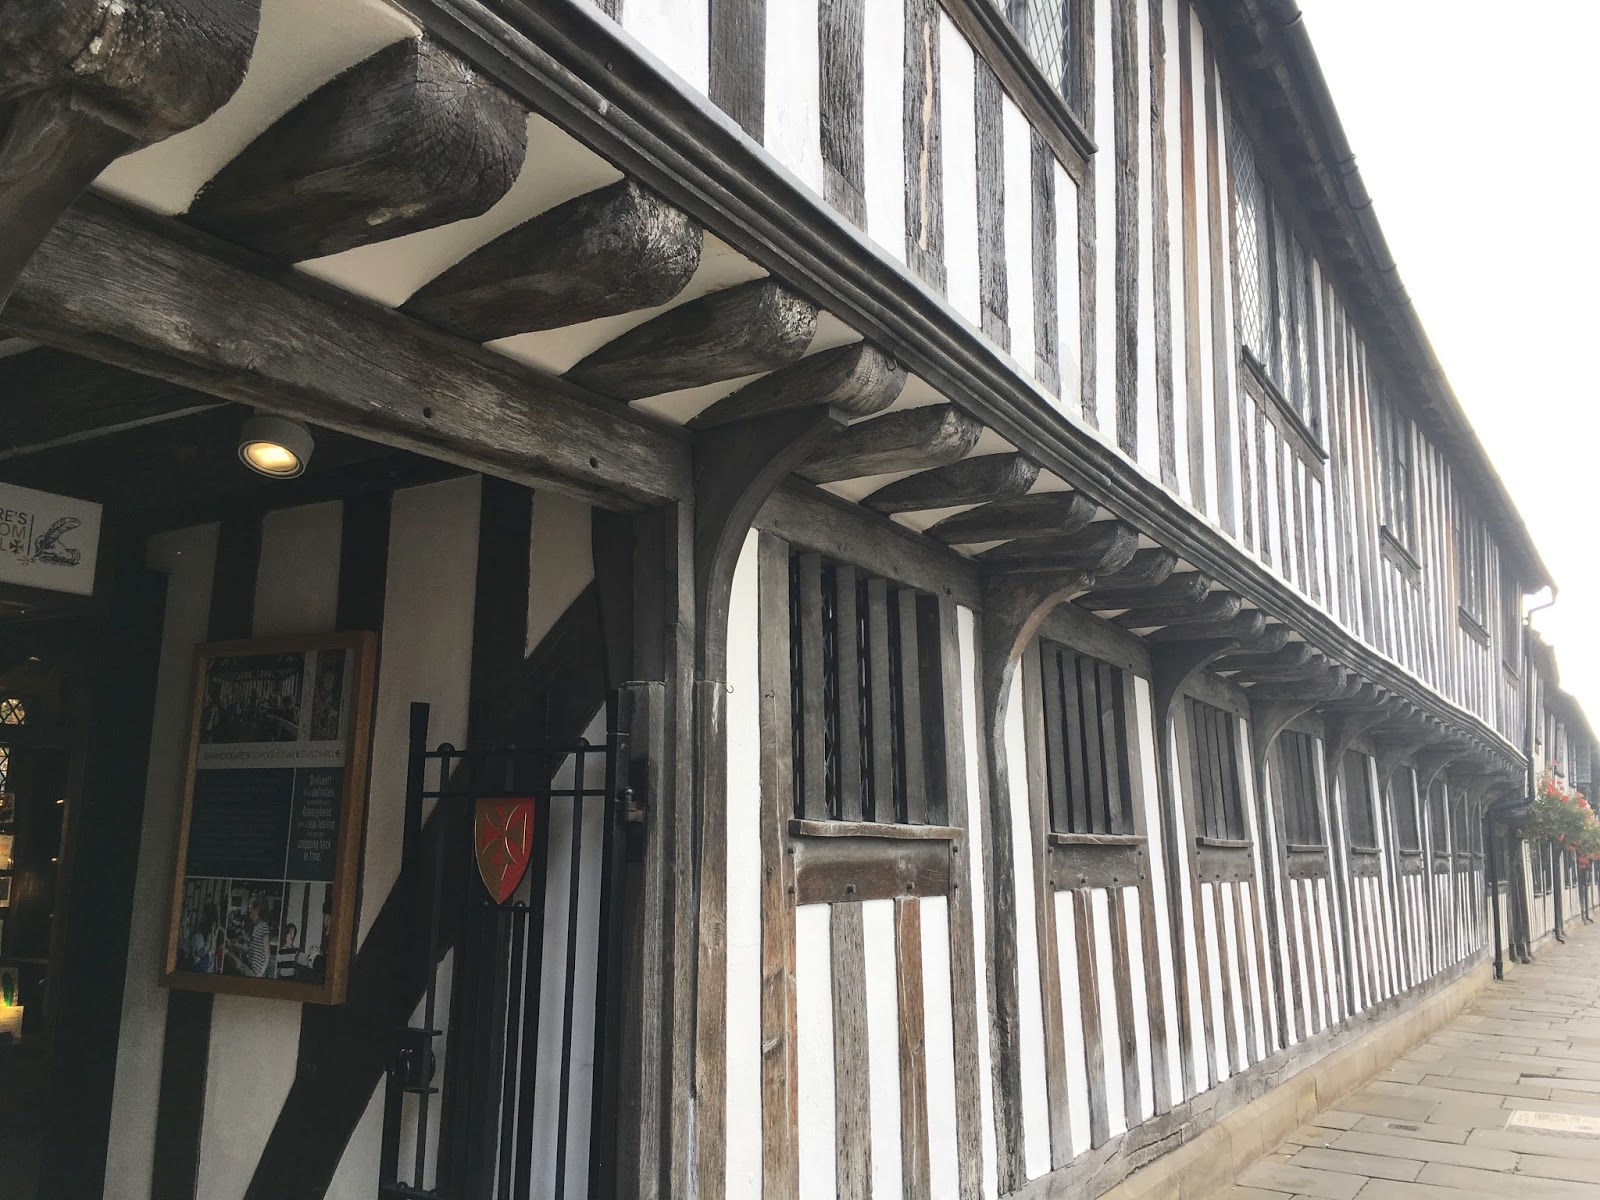 William Shakespeare The Guildhall \ Stratford Upon Avon \ Travel \ Priceless Life of Mine \ Over 40 lifestyle blog